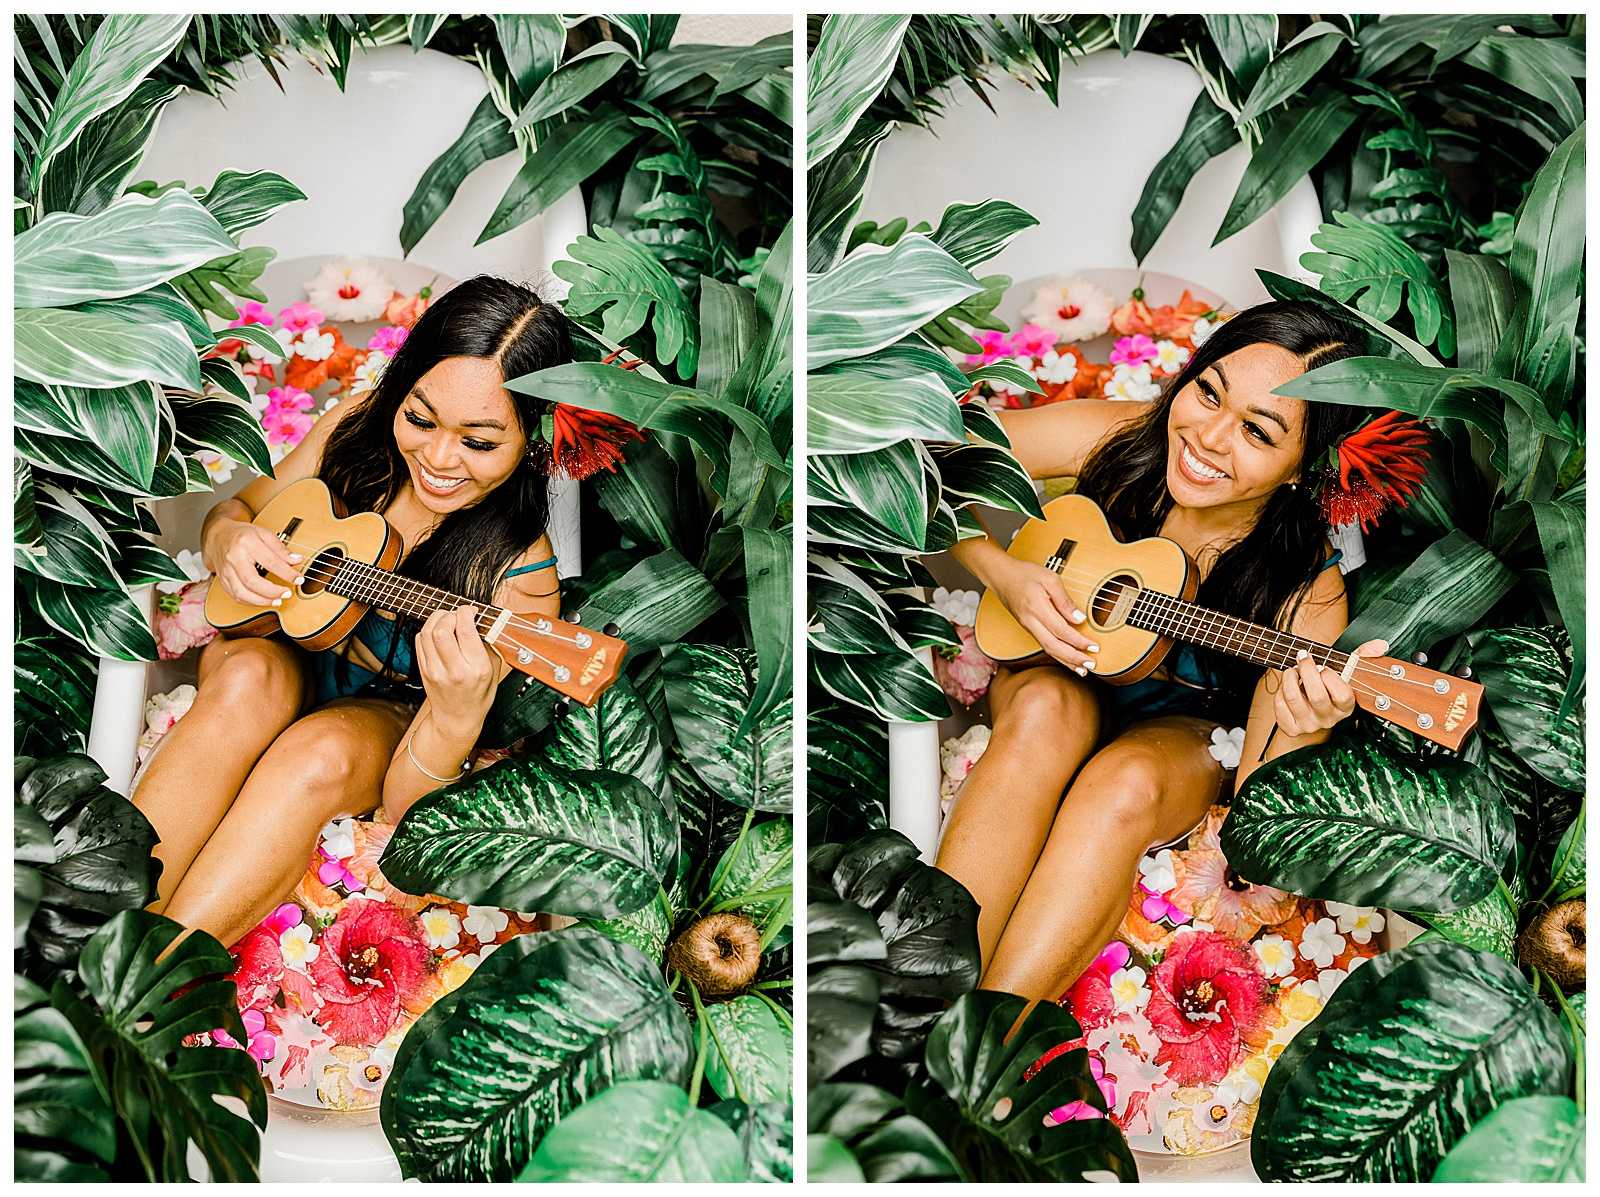 A Hawaiian woman sits in a tub with a ukulele